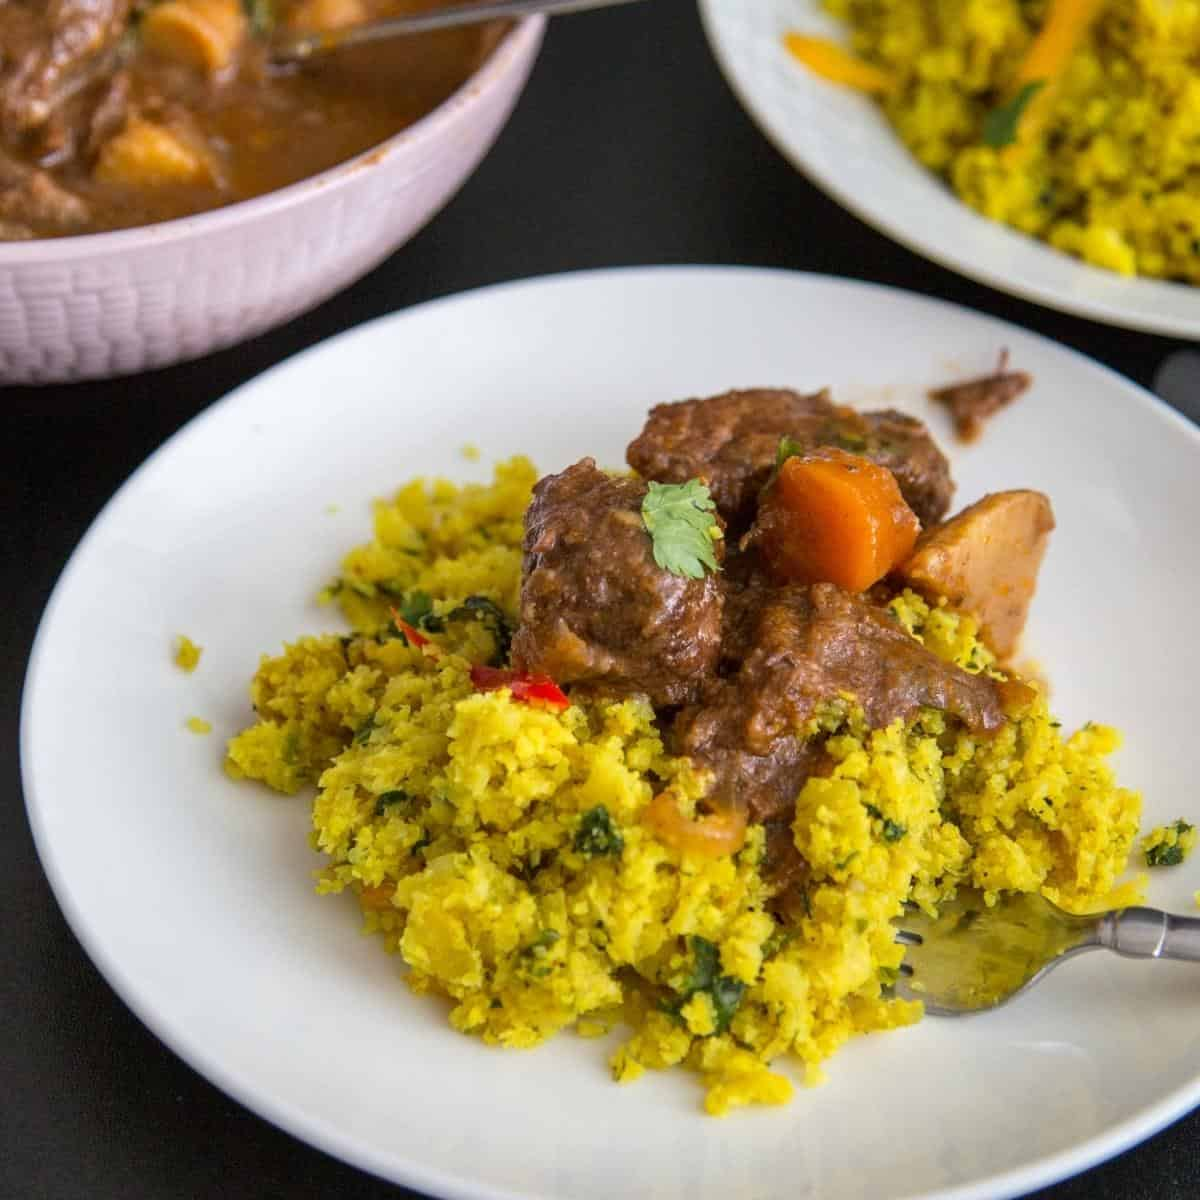 Cauliflower rice pilaf with turmeric in a bowl